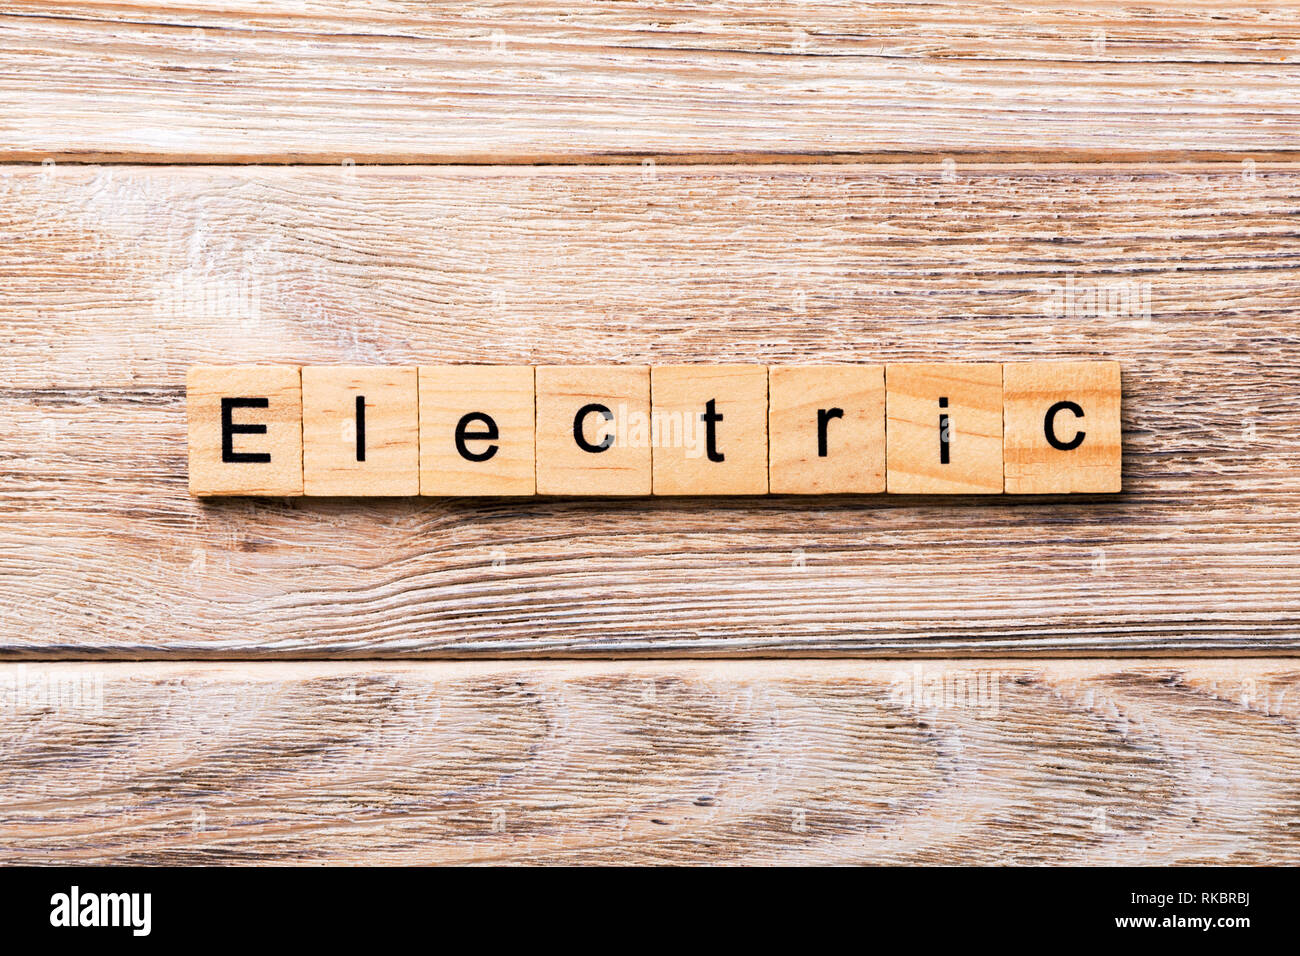 Electric word written on wood block. Electric text on wooden table for your desing, concept. Stock Photo